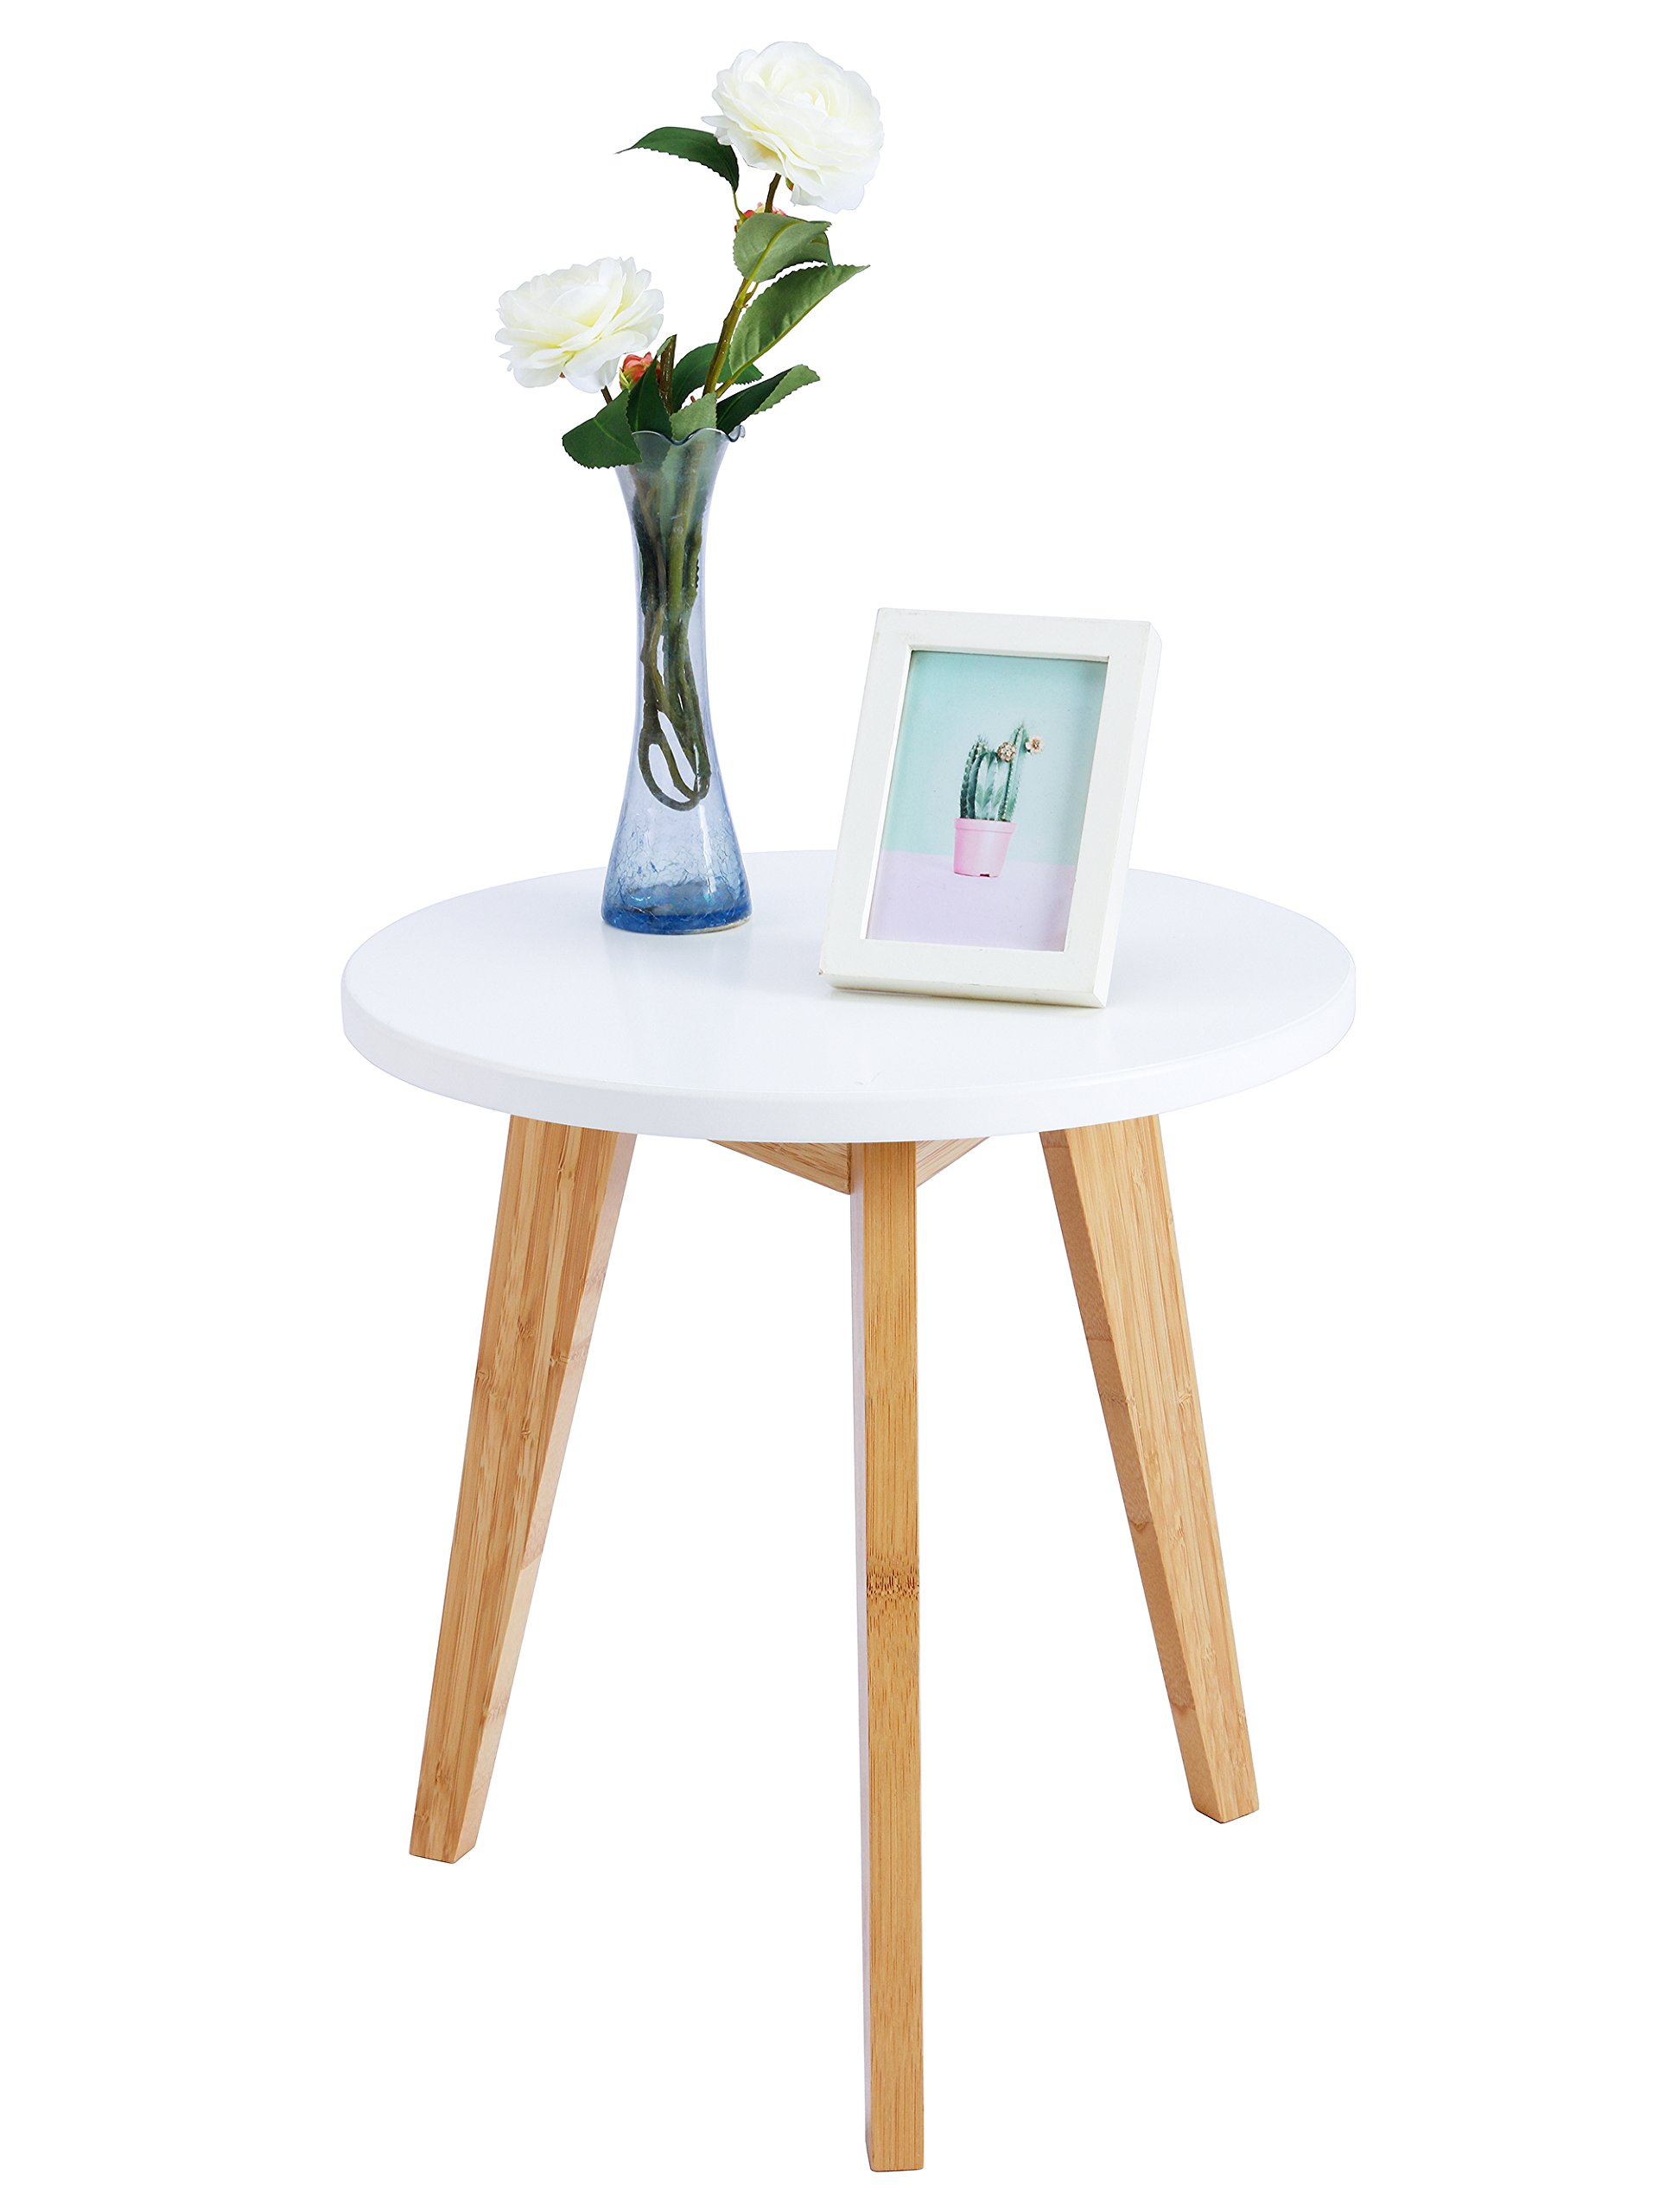 WILSHINE Small Round End Table For Small Spaces In Living